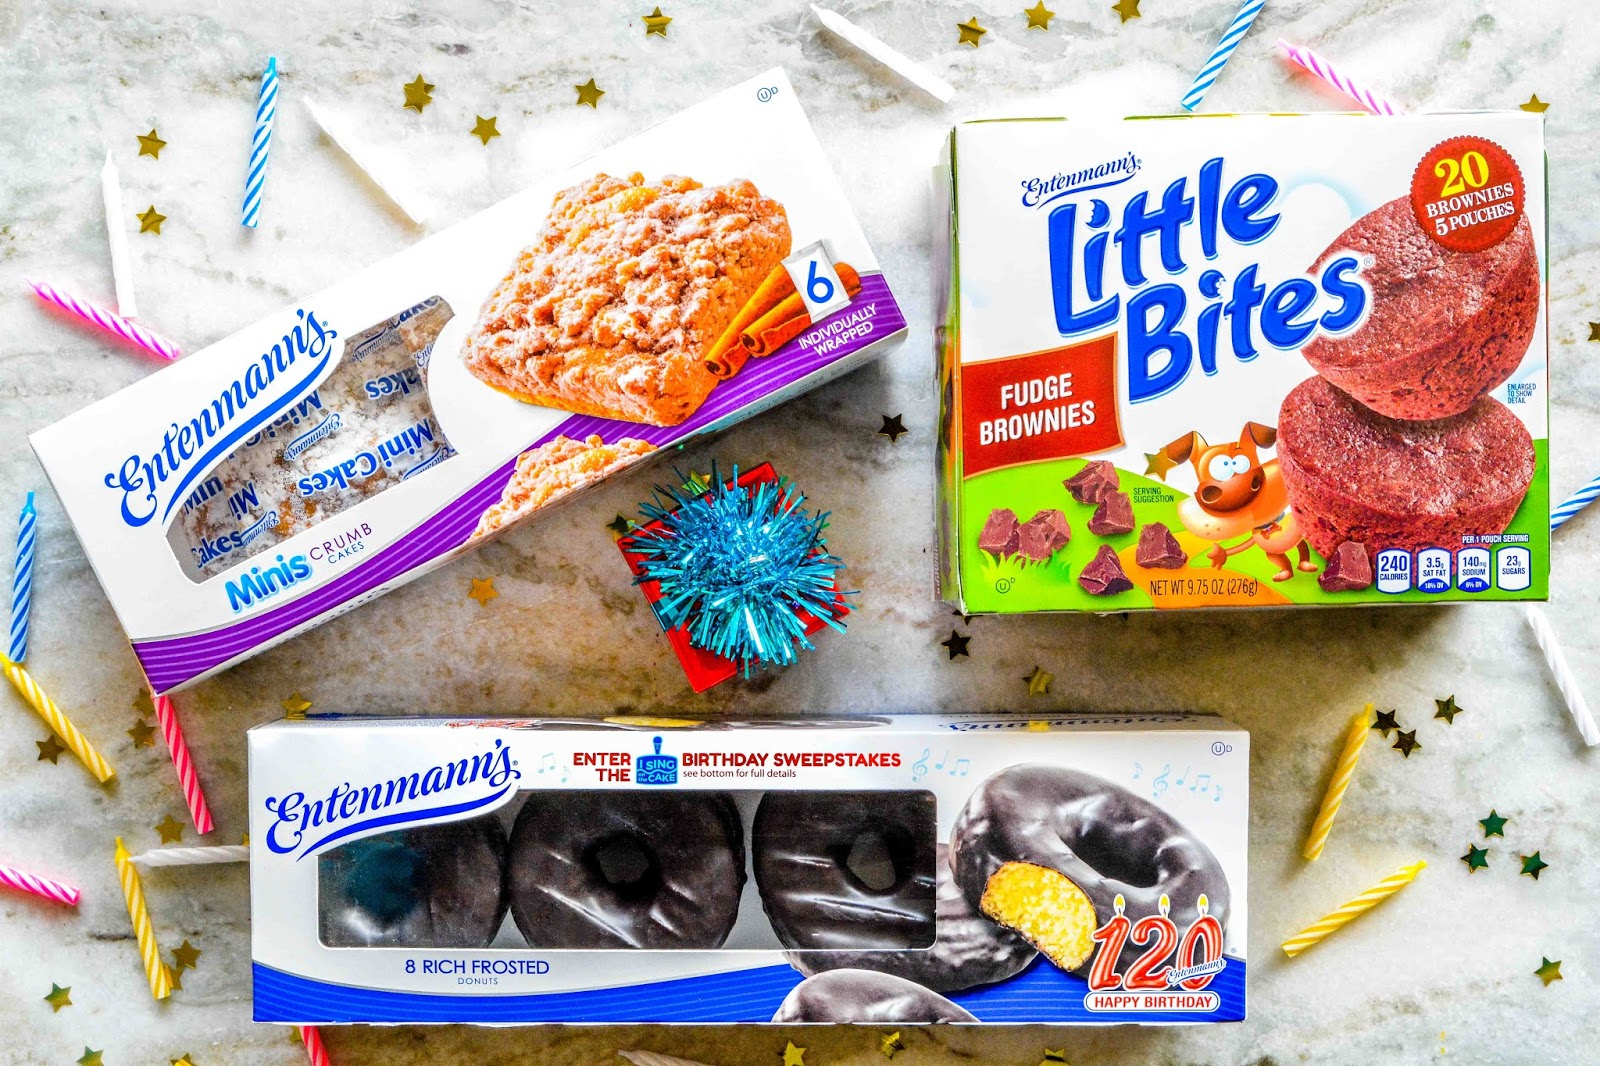 Theresa's Mixed Nuts: Entenmann's® 120th Birthday Giveaway